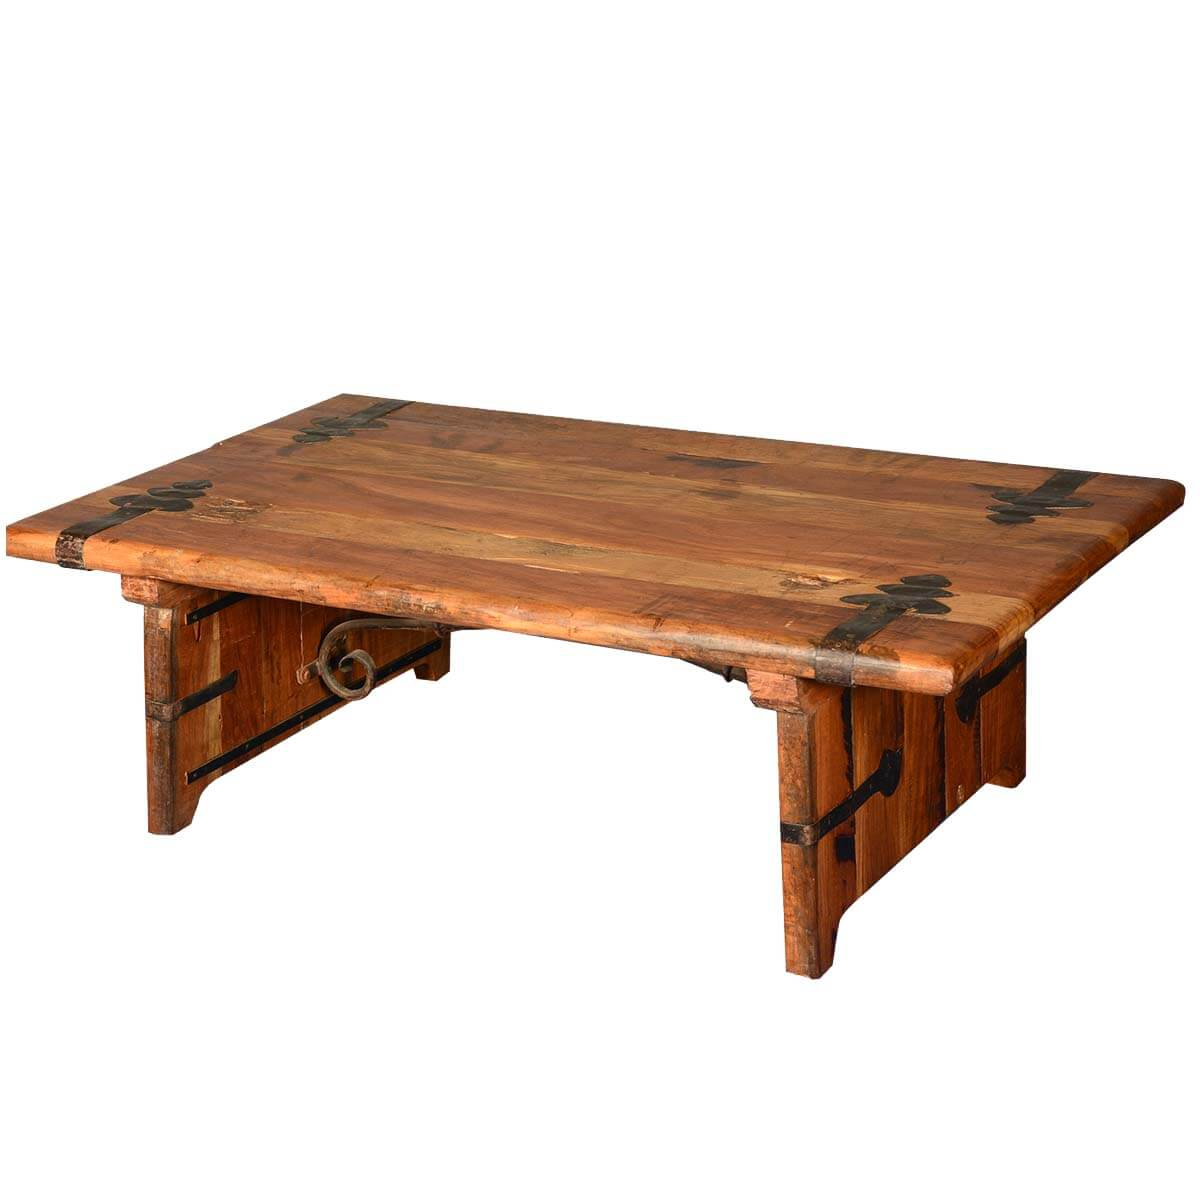 Rustic reclaimed wood wrought iron hastings coffee table Rustic wood and metal coffee table